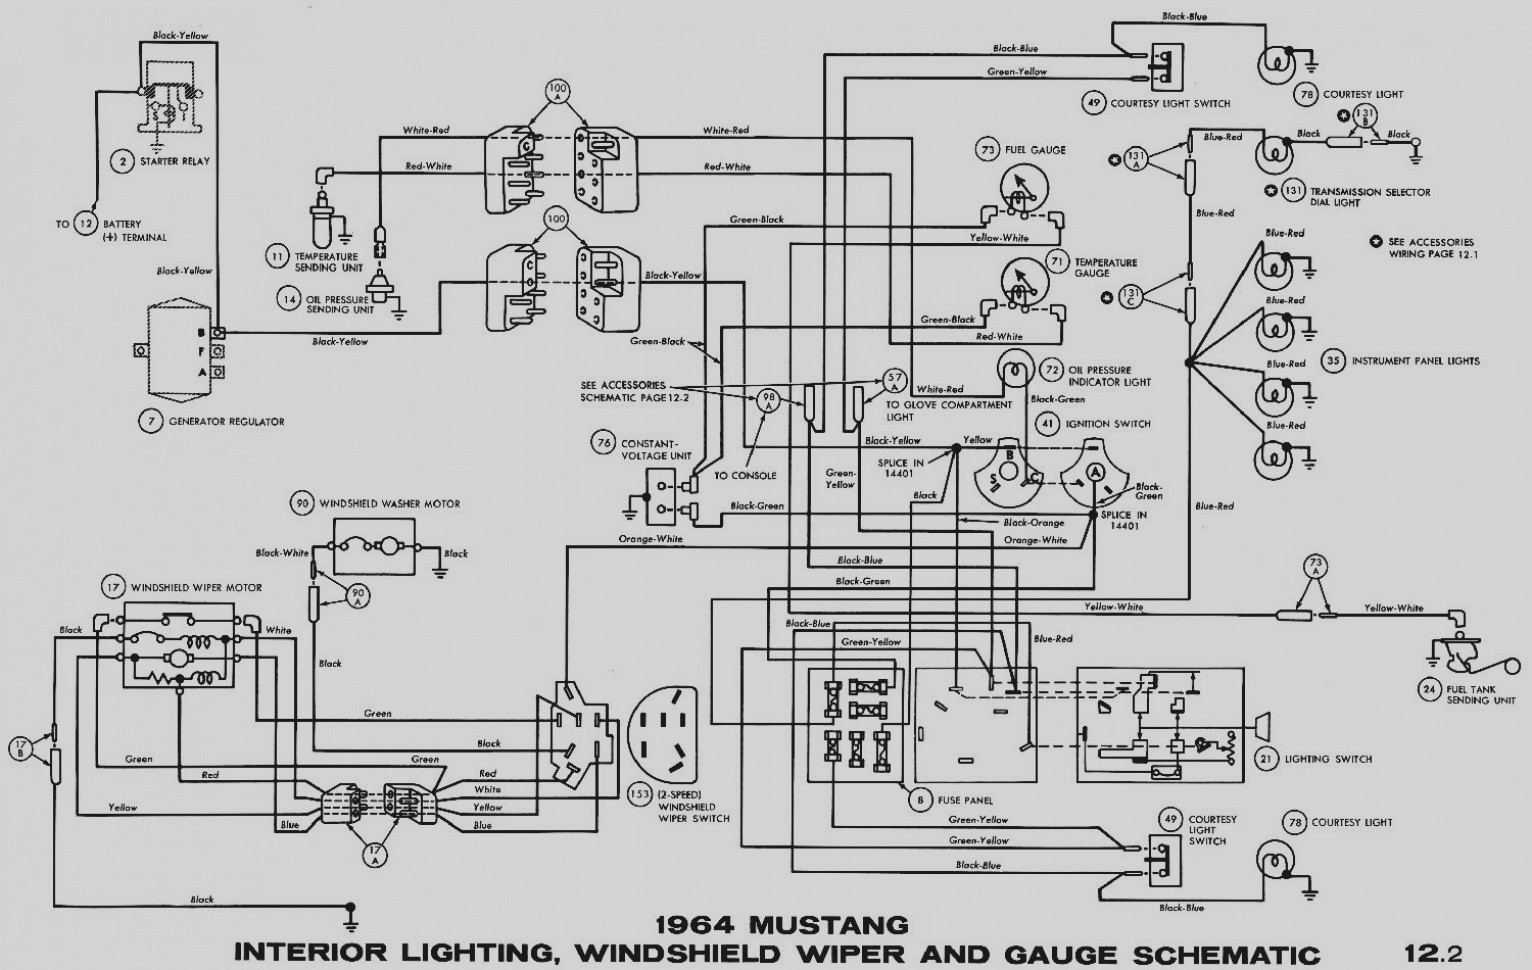 [DIAGRAM_3ER]  77BAA 1966 Chrysler 300 Electric Window Wiring Diagram | Wiring Library | 1966 Chrysler 300 Electric Window Wiring Diagram |  | Wiring Library